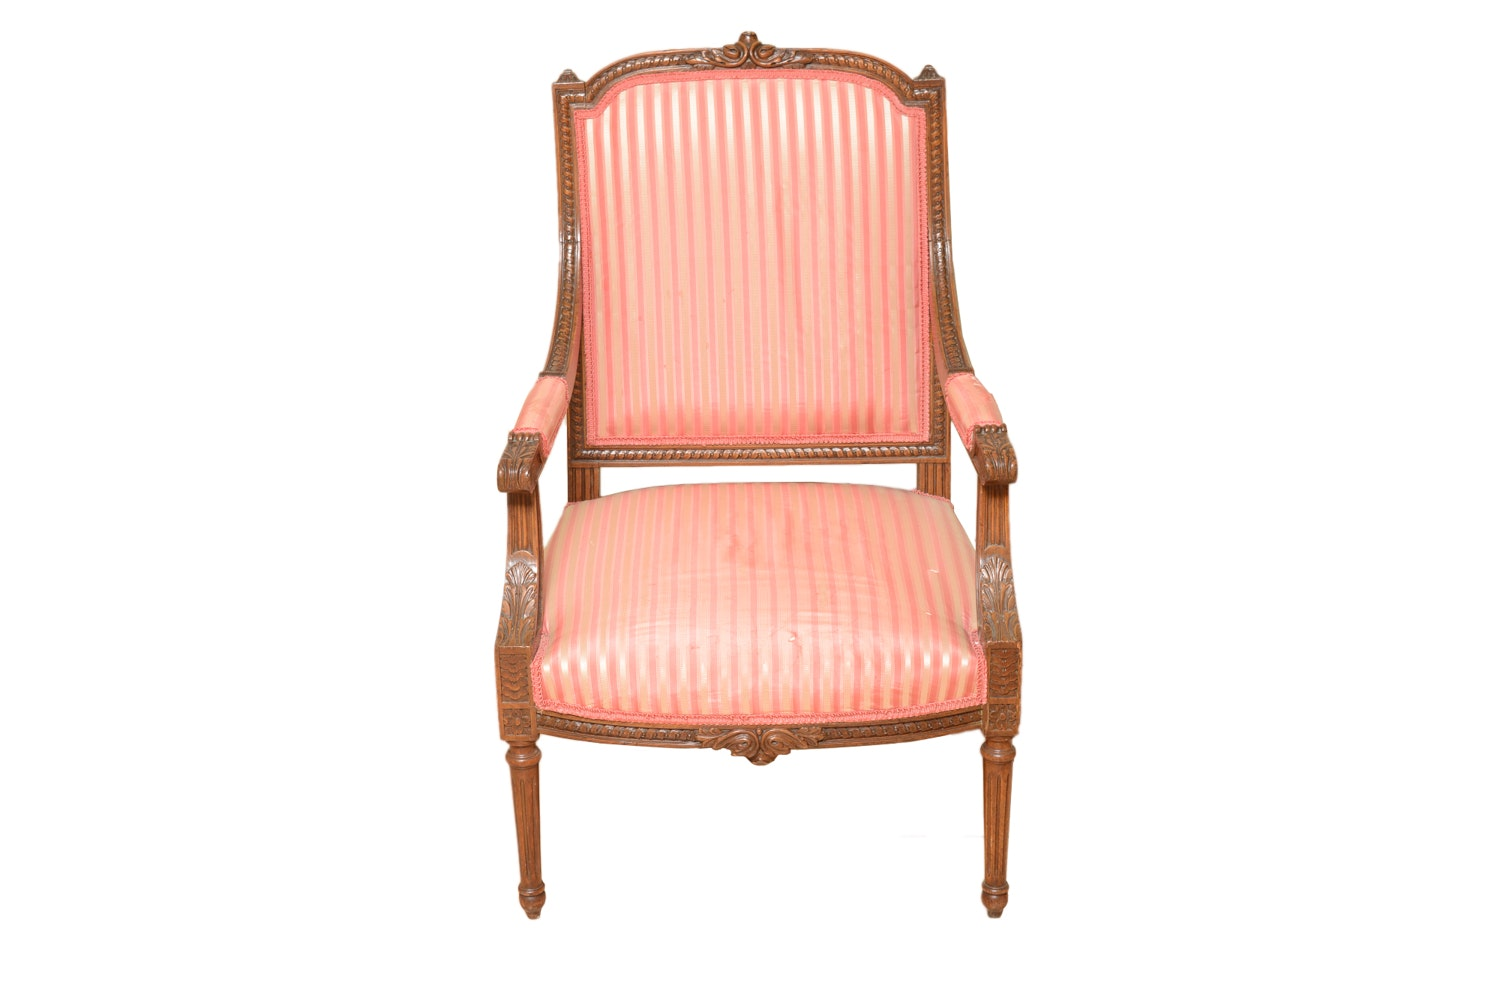 Vintage Louis XVI Style Upholstered Armchair